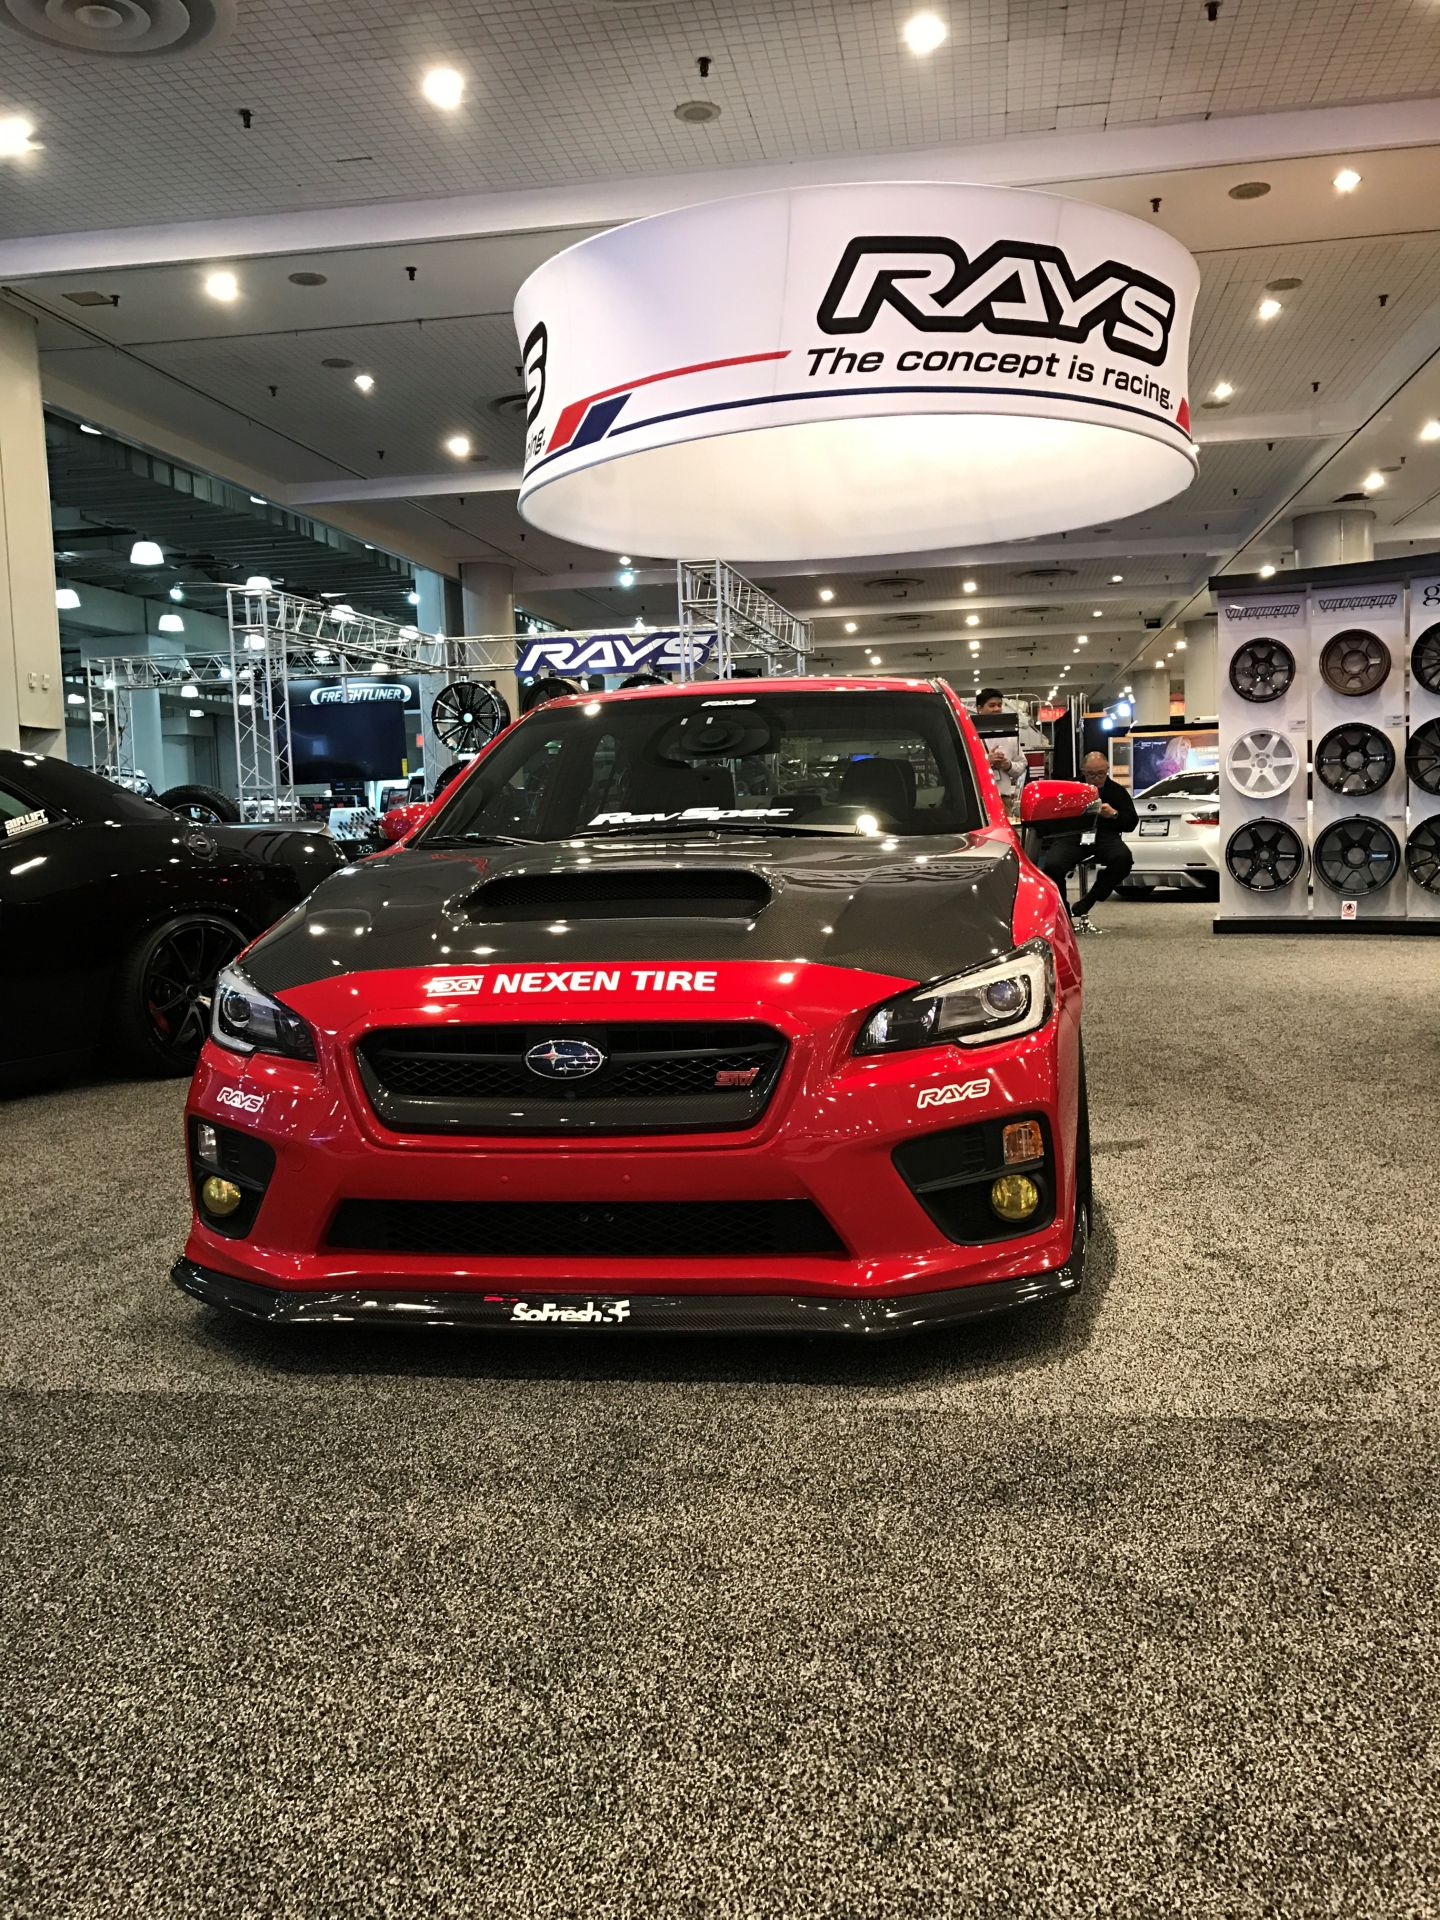 Nexen Partners With Rays Wheels Brand at New York Auto Show